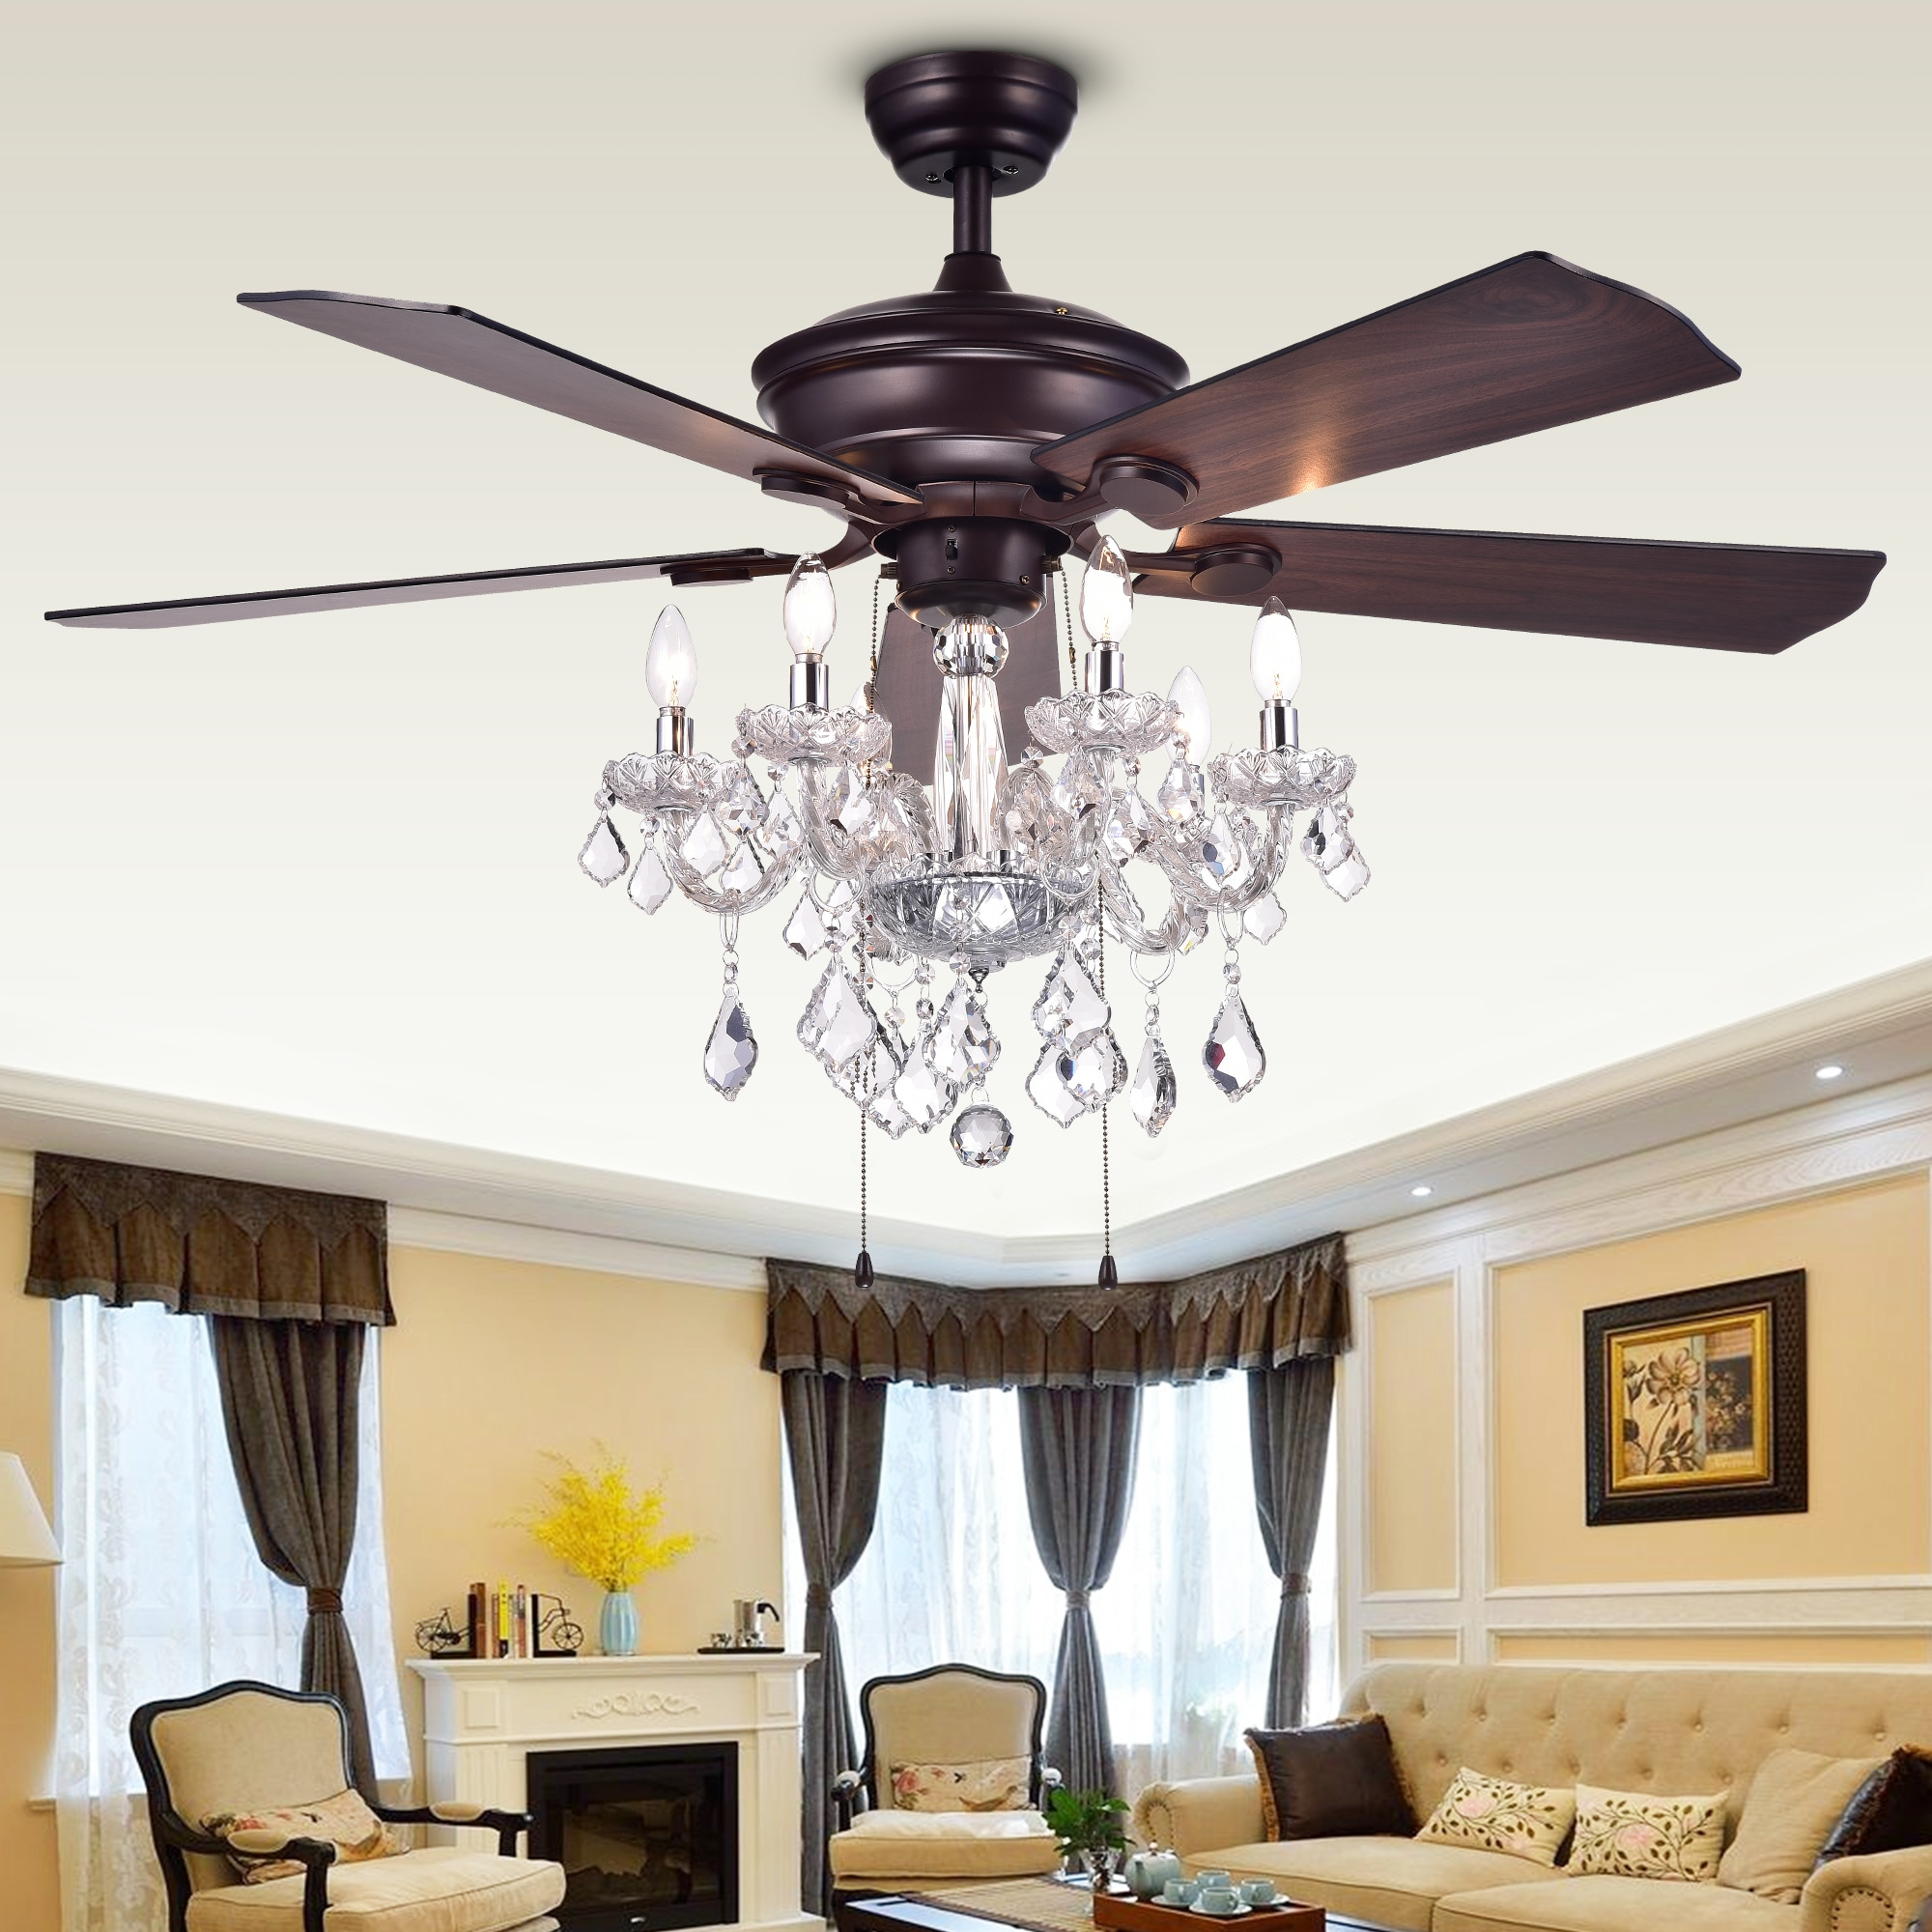 Warehouse of Tiffany Havorand 52inch 5blade Ceiling Fan with